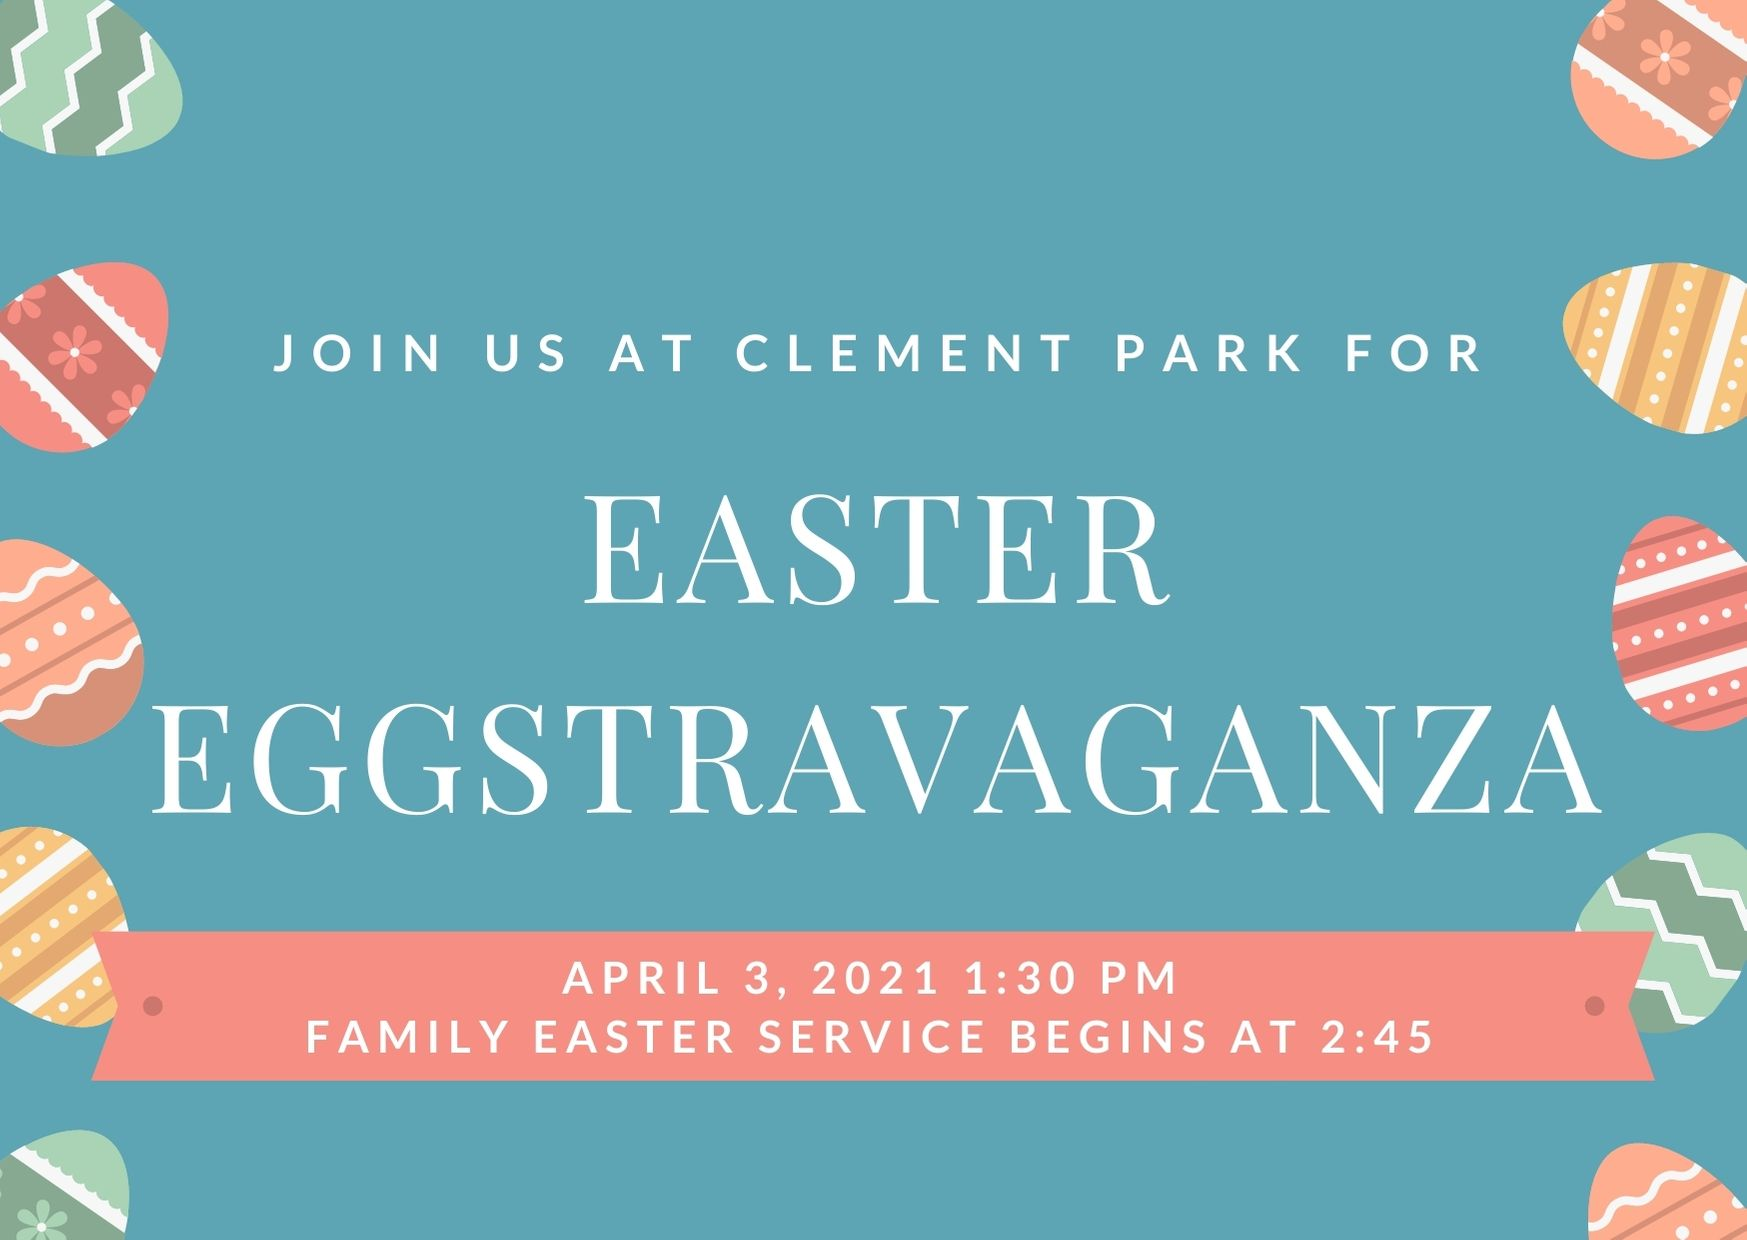 Easter Eggstravaganza April 3